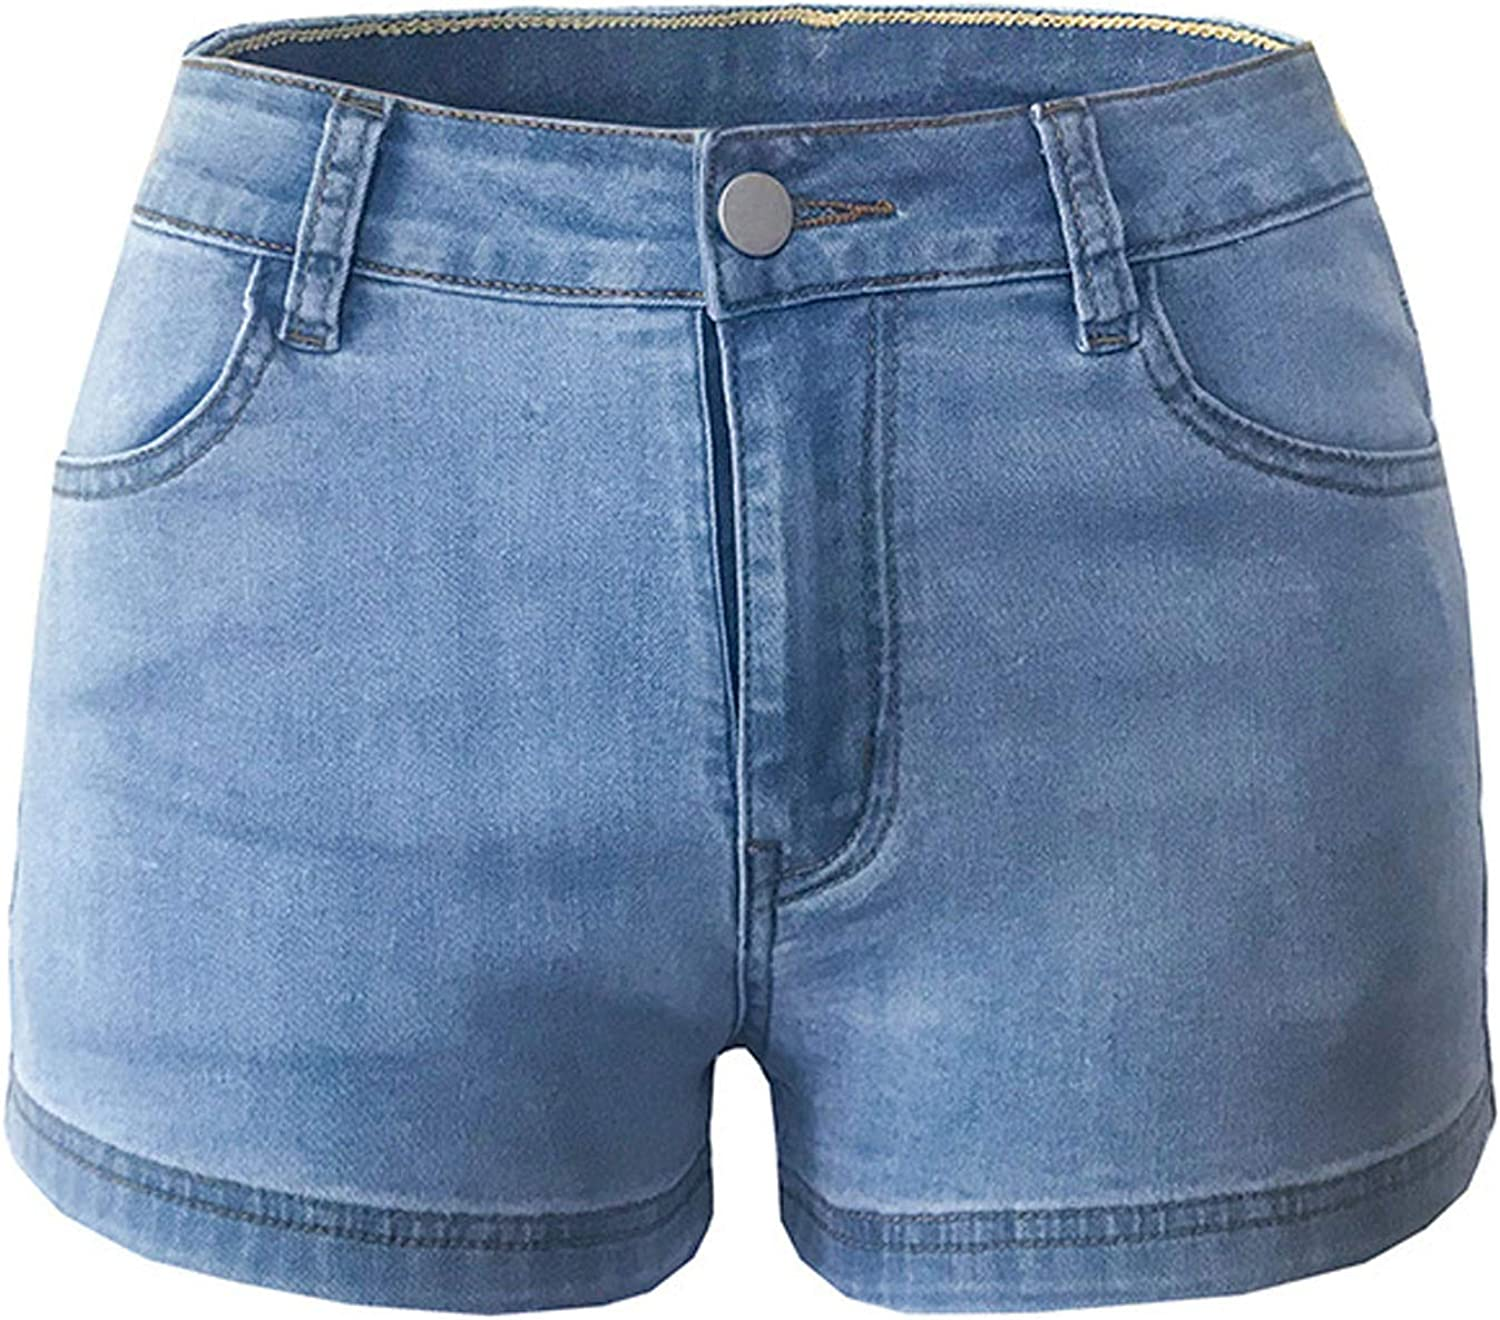 Denim Hot Shorts for Women High Stretch High Waisted Jeans Short Shaping Pull-on Skinny Jeans